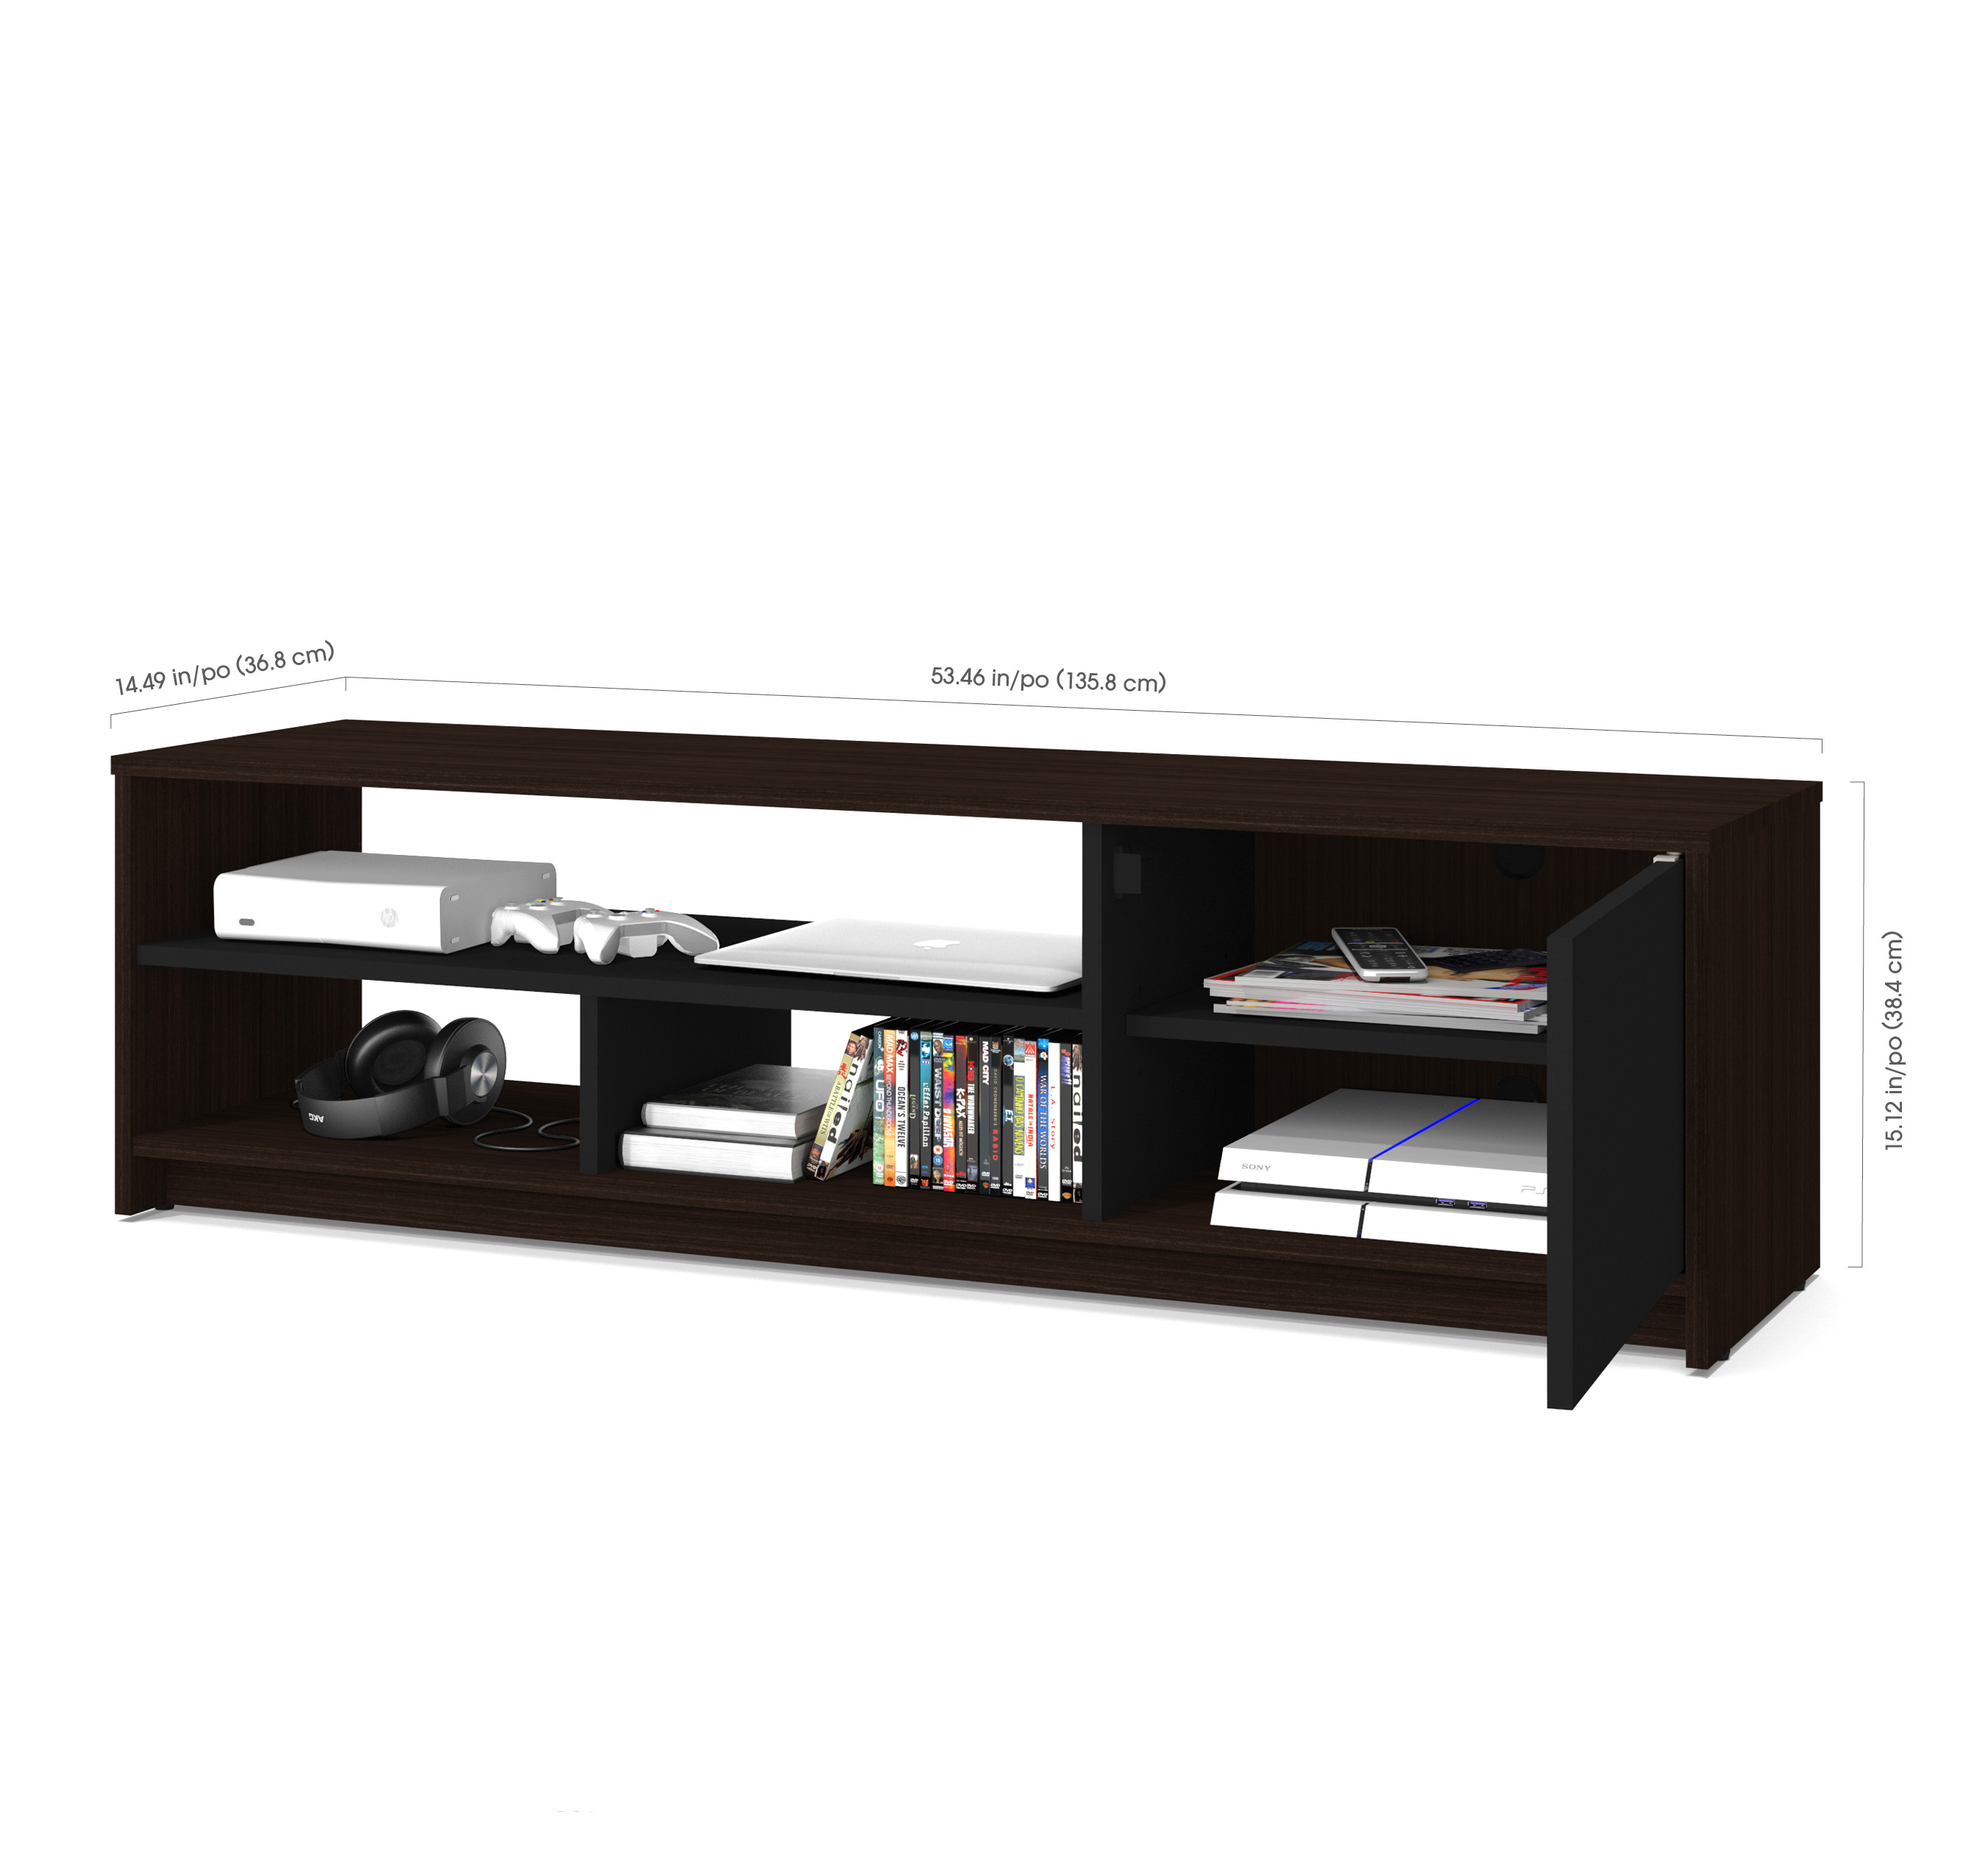 bestar small space 53 5 inch tv stand in dark chocolate and black walmart com